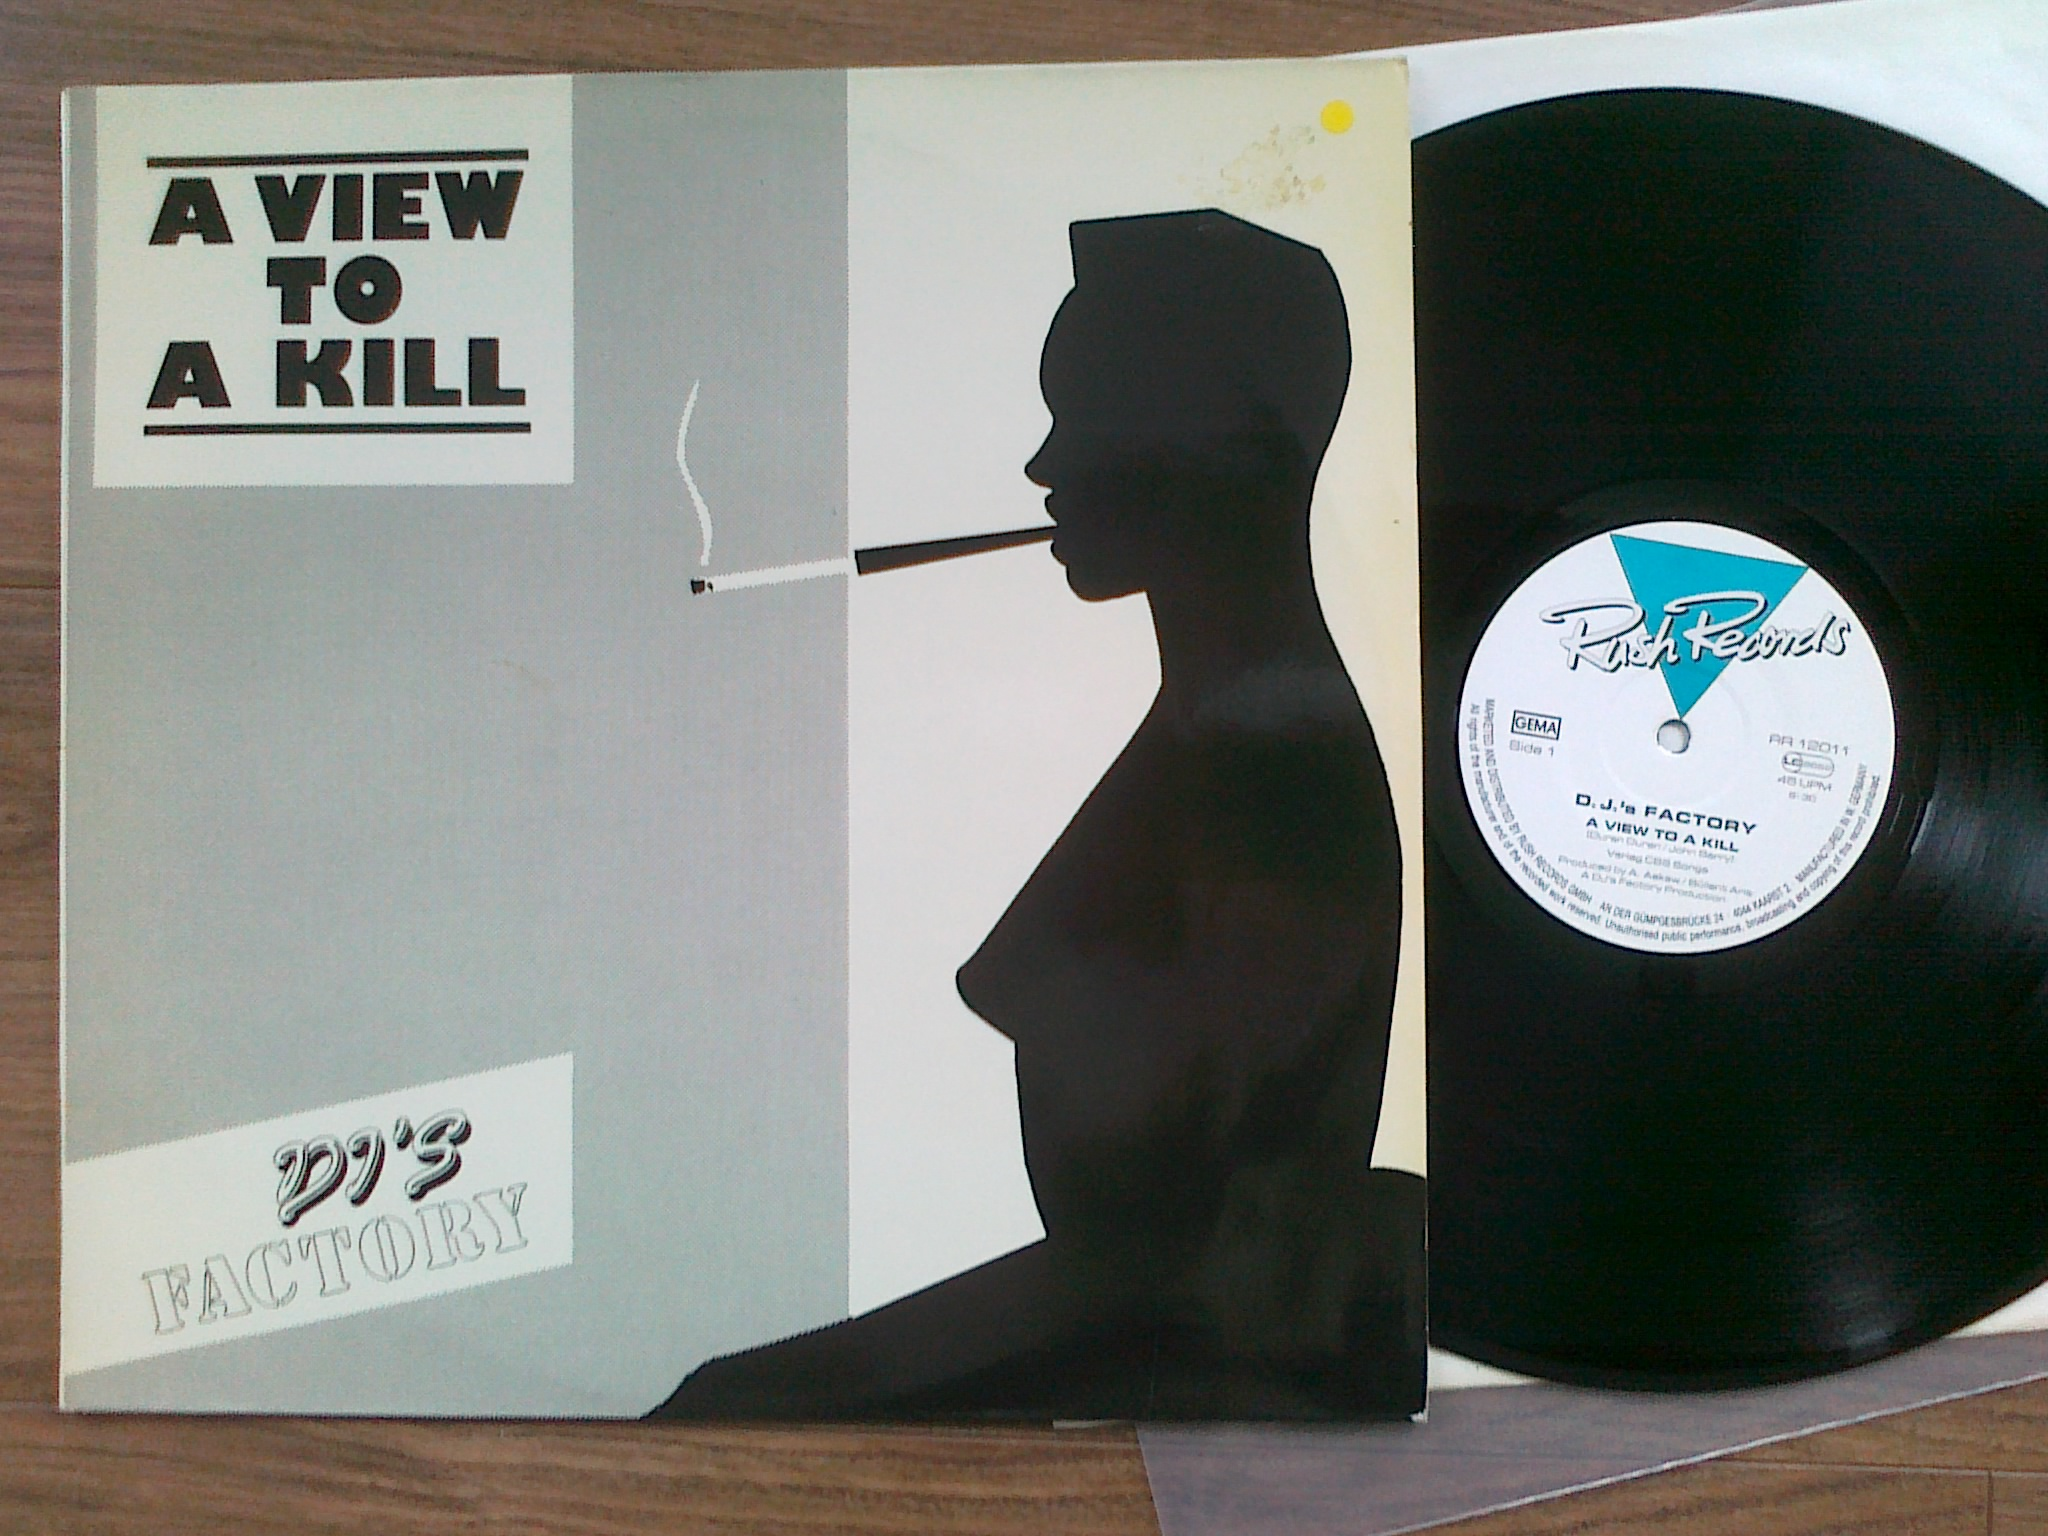 DJ s Factory - A View To Kill